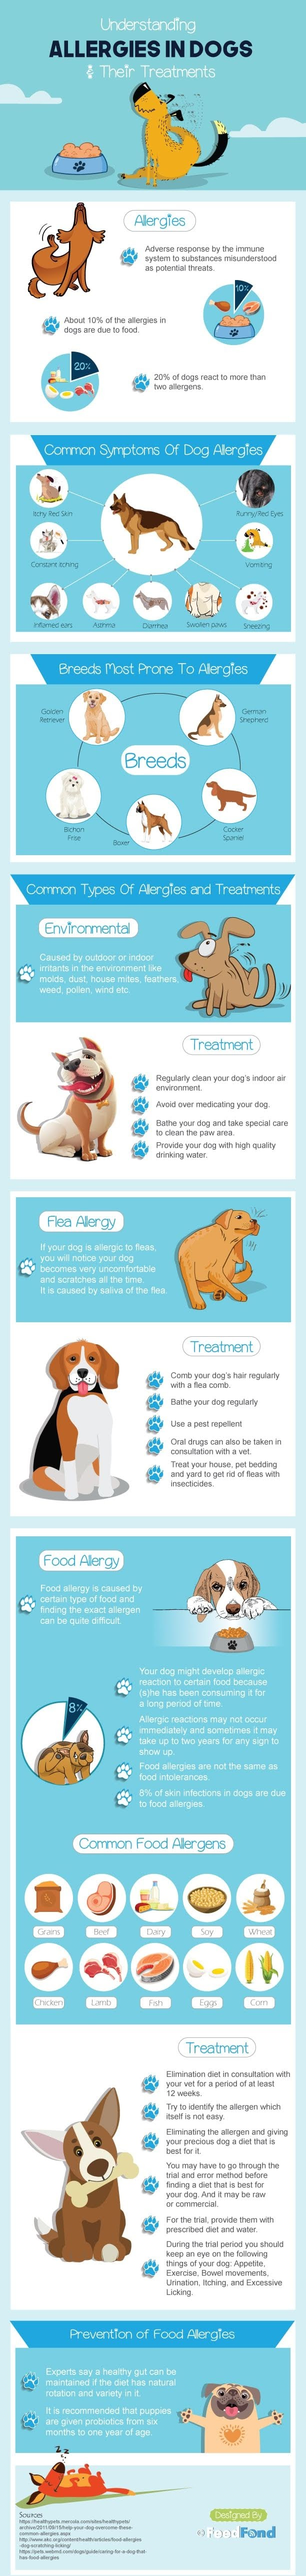 Understanding Allergies In Dogs And Their Treatments